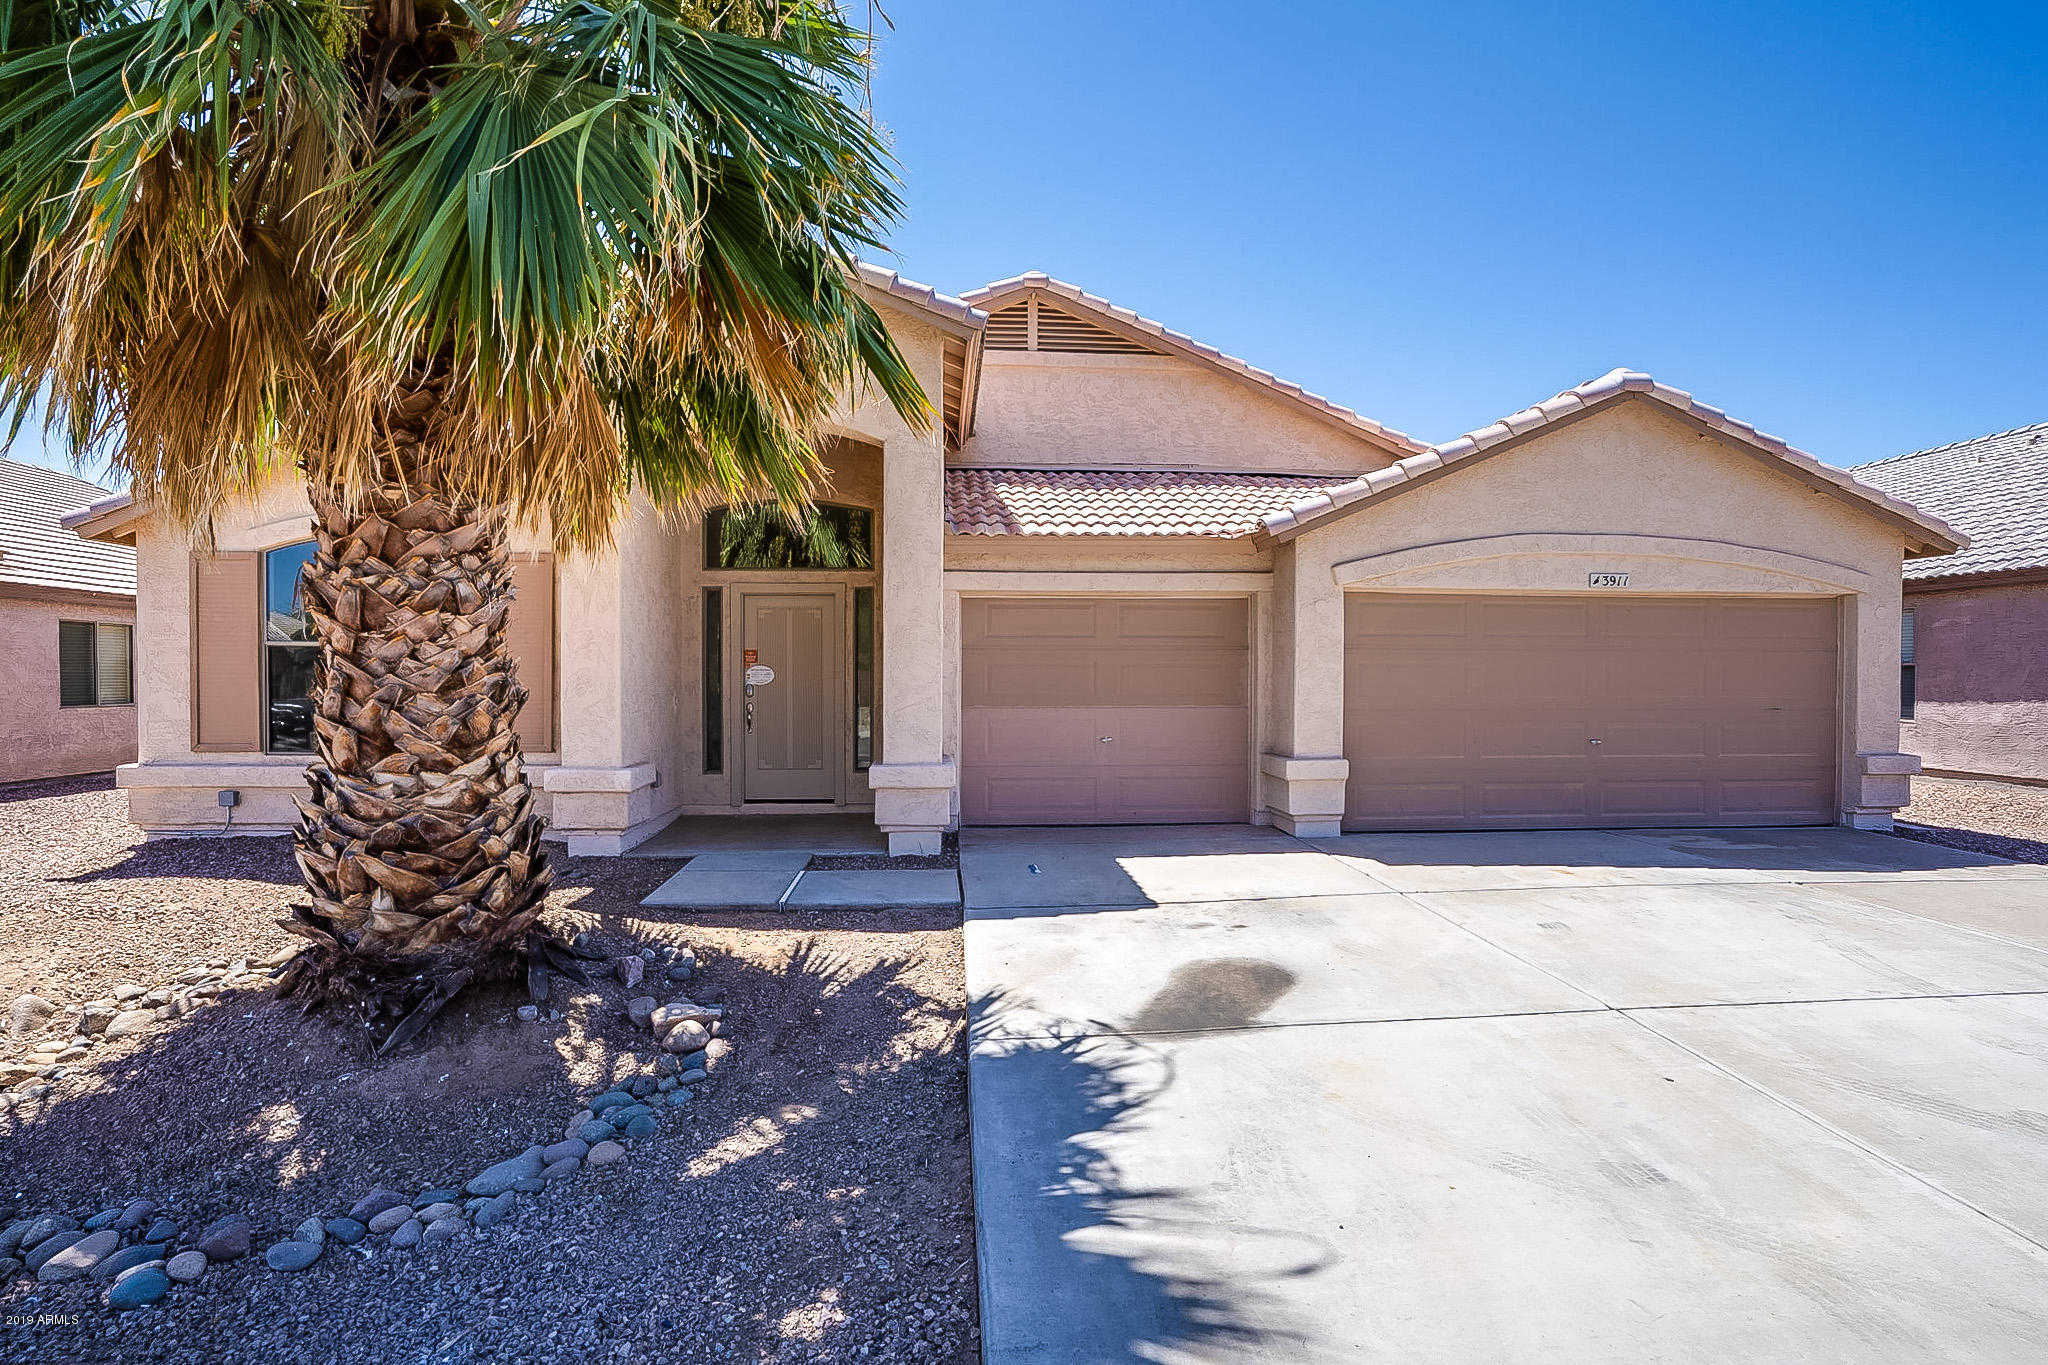 $334,000 - 4Br/2Ba - Home for Sale in Sunset Trails, Glendale